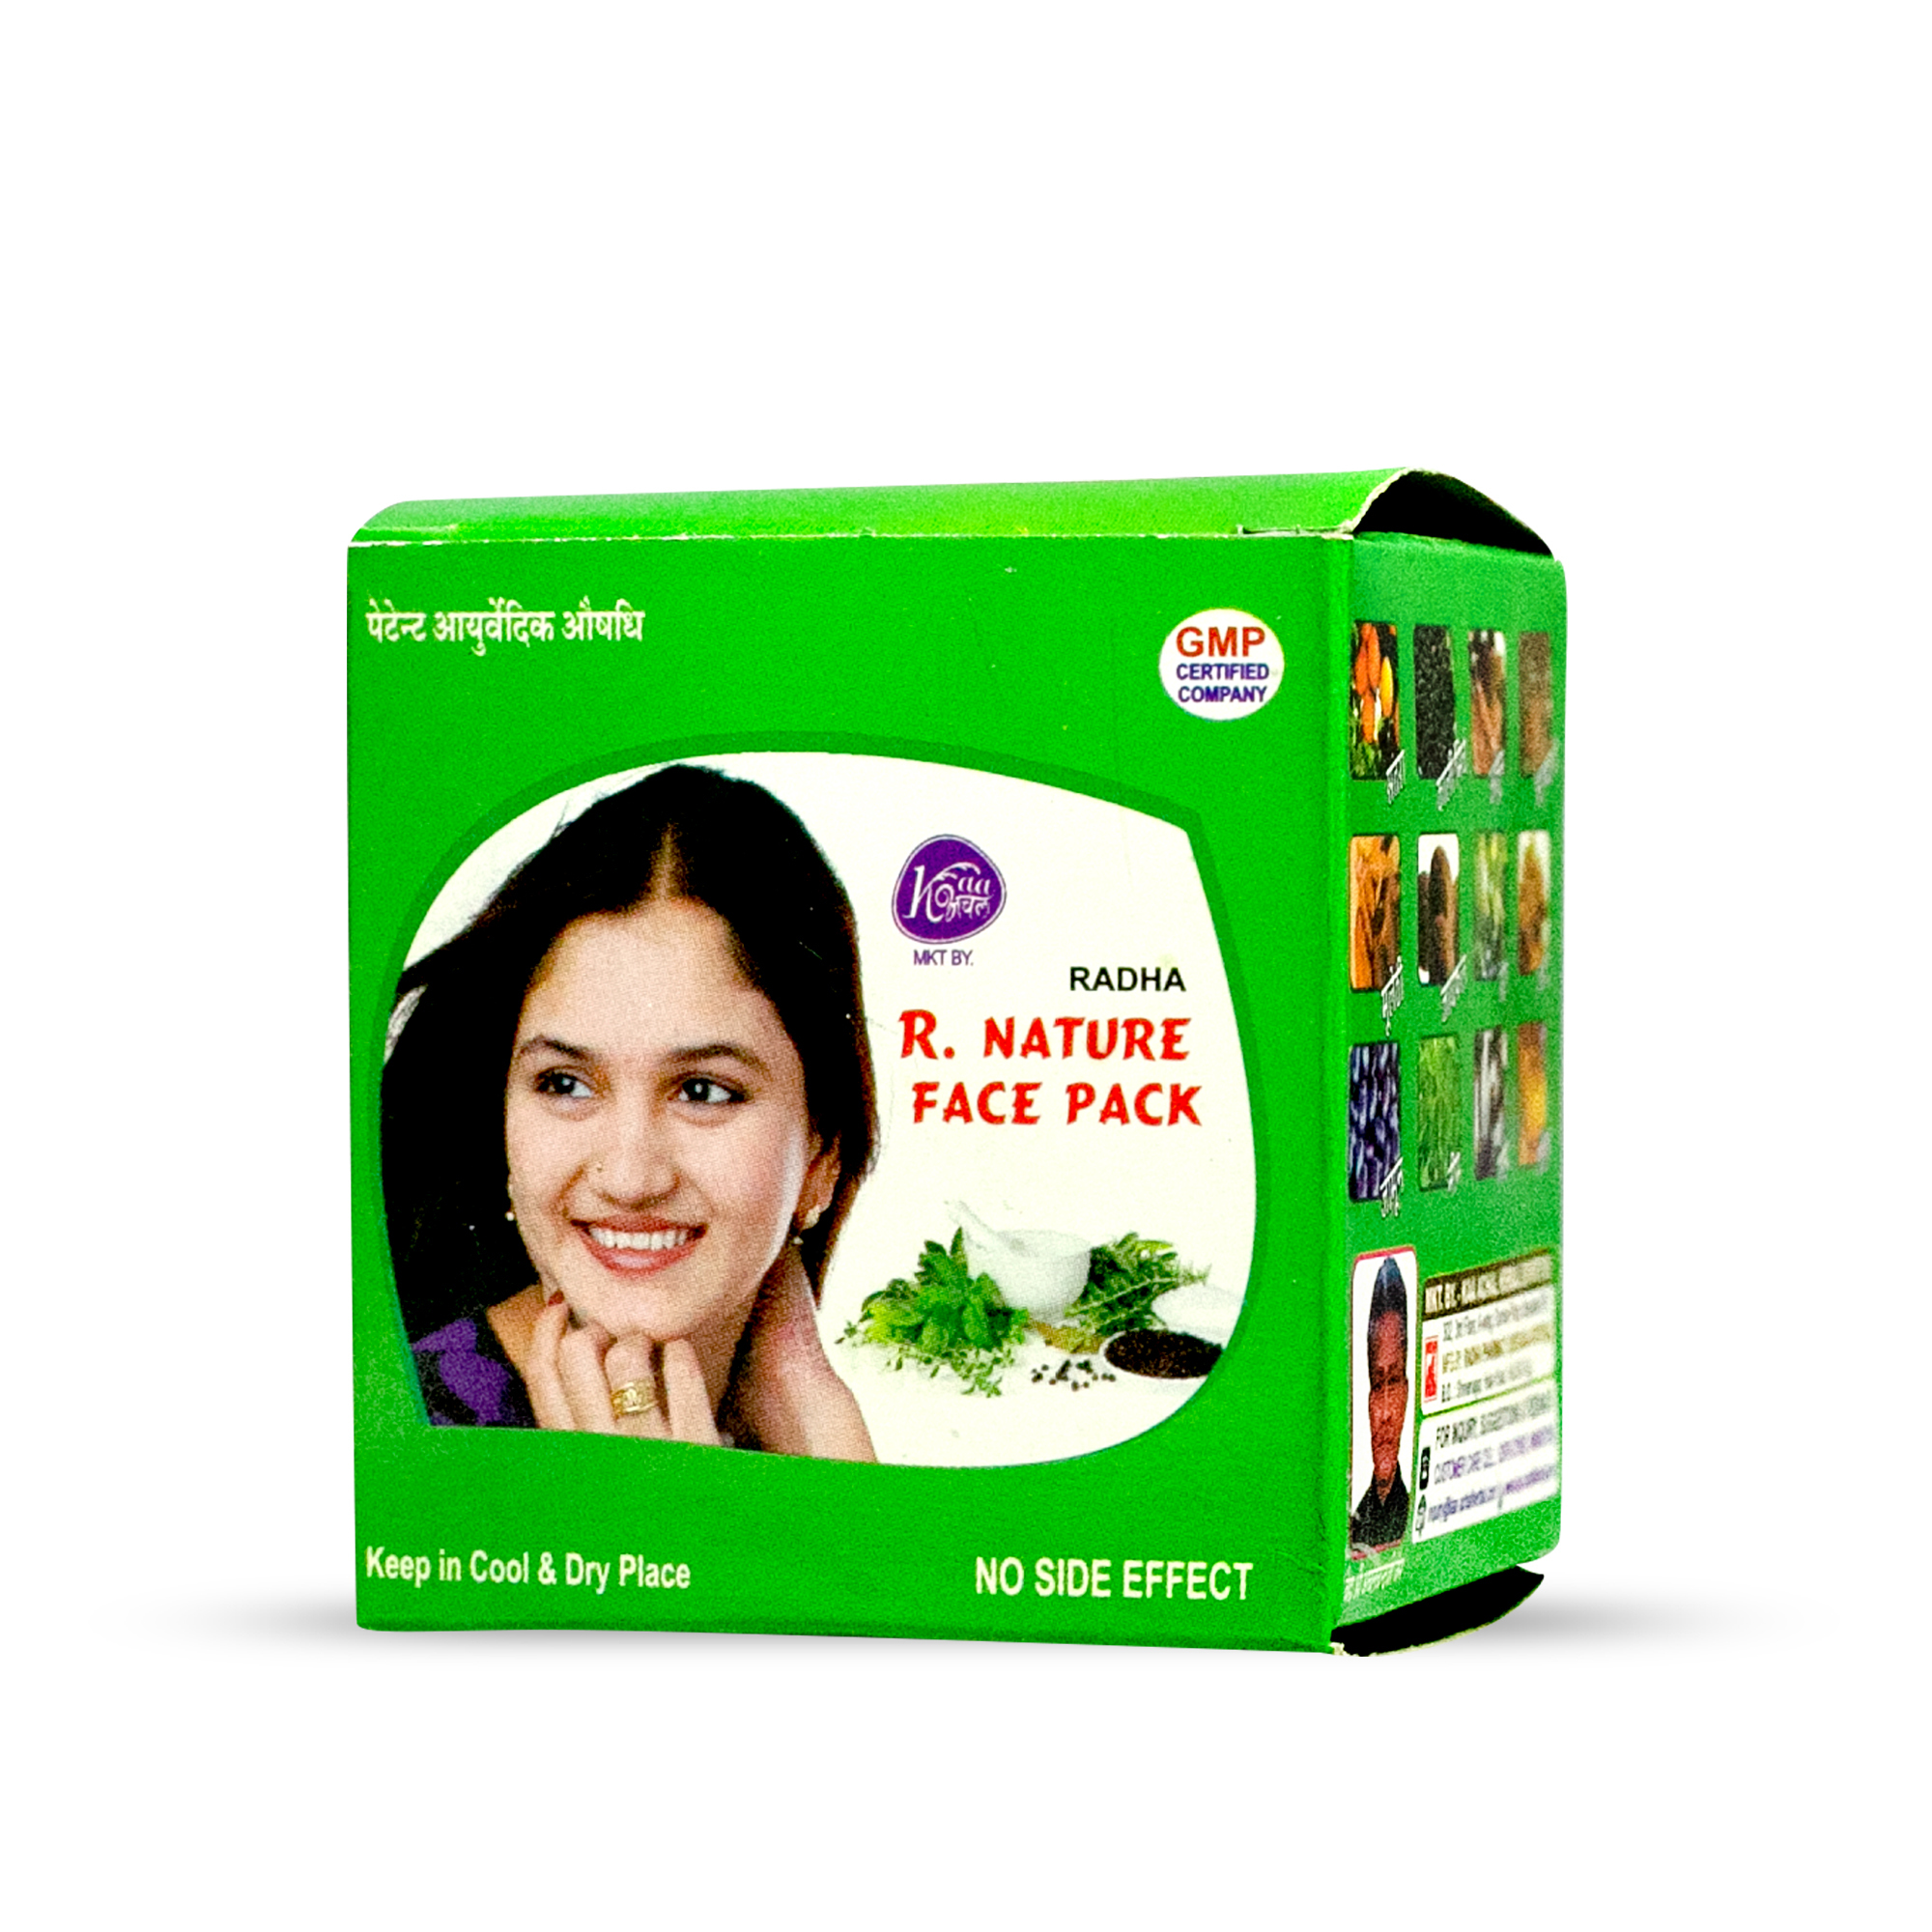 r. nature face pack